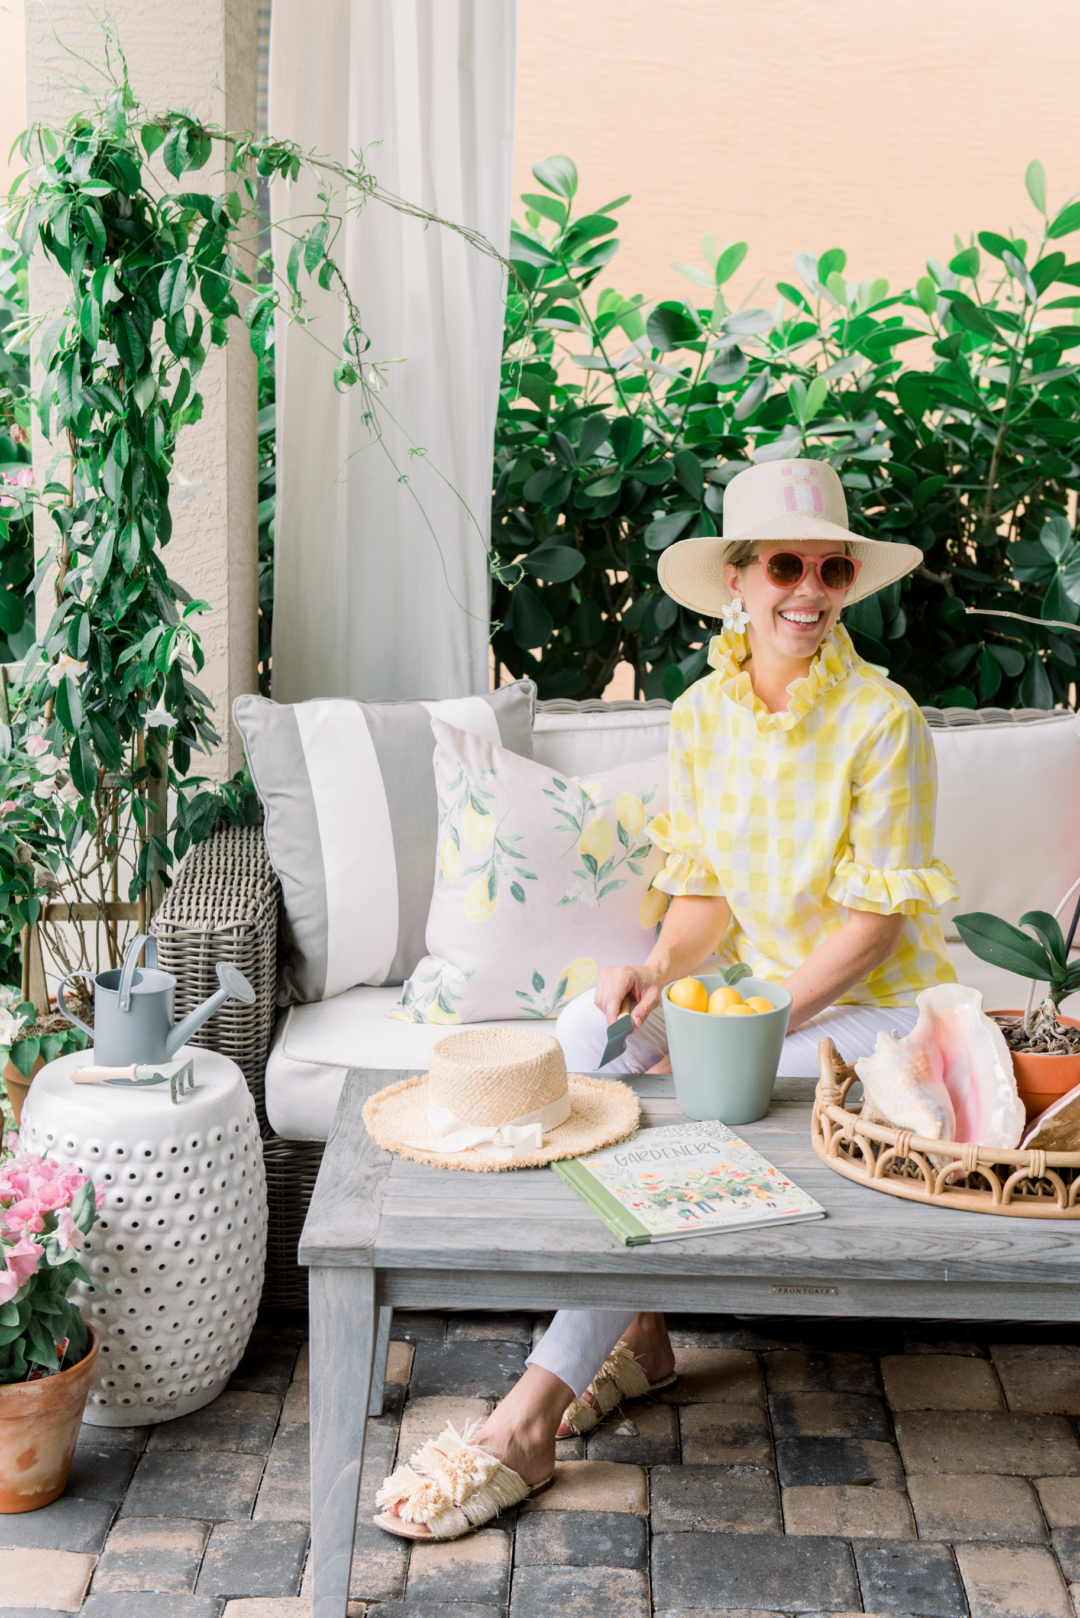 Home: Palm Beach Lately featuring Brooke and Lou's Blush Lemon Pillows